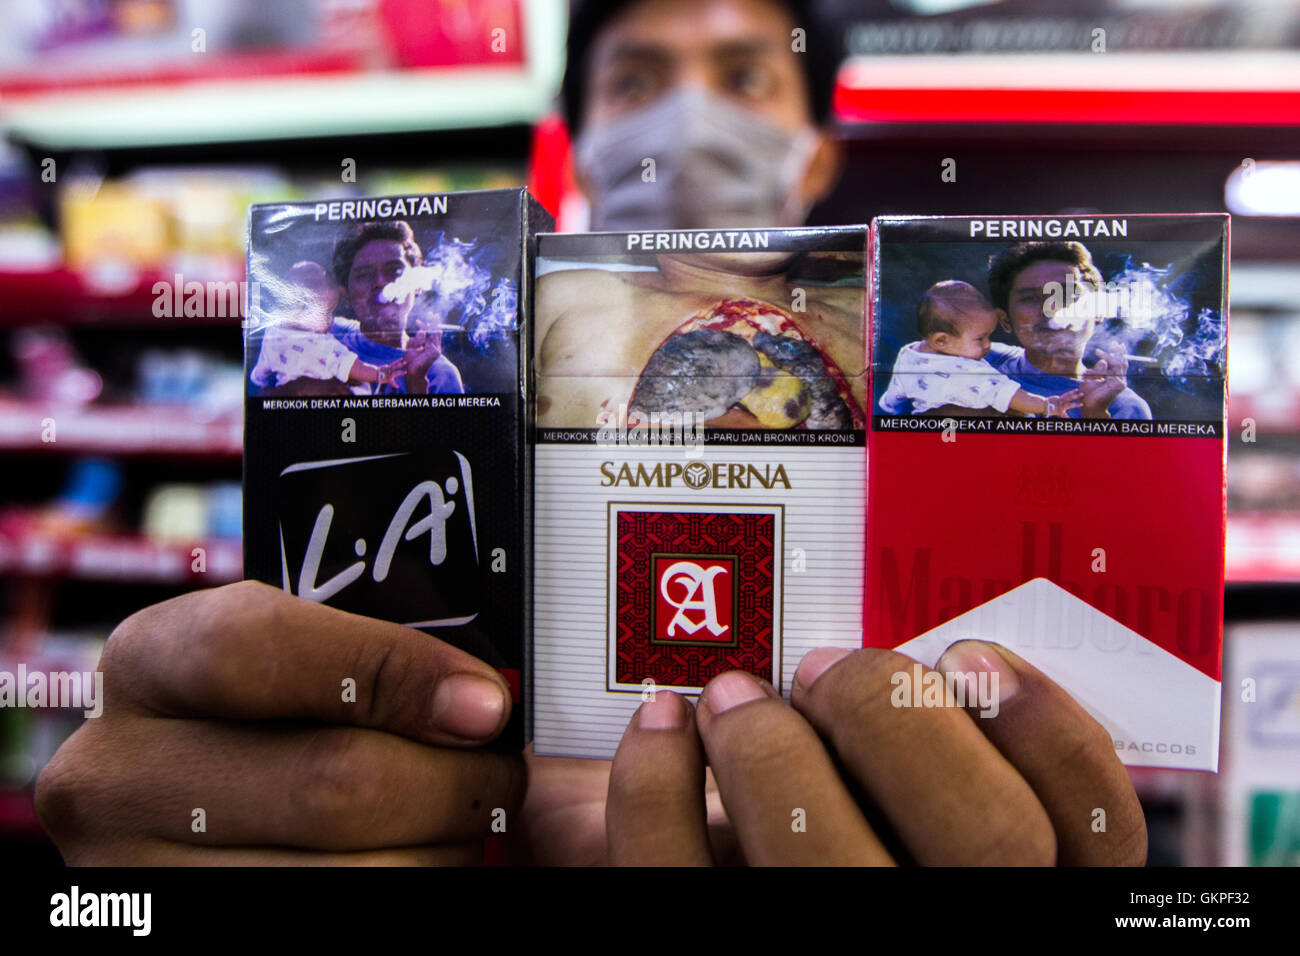 Medan, North Sumatra, Indonesia. 23rd Aug, 2016. A vendor holds packs of cigarettes to show at a mini store in Medan - Stock Image